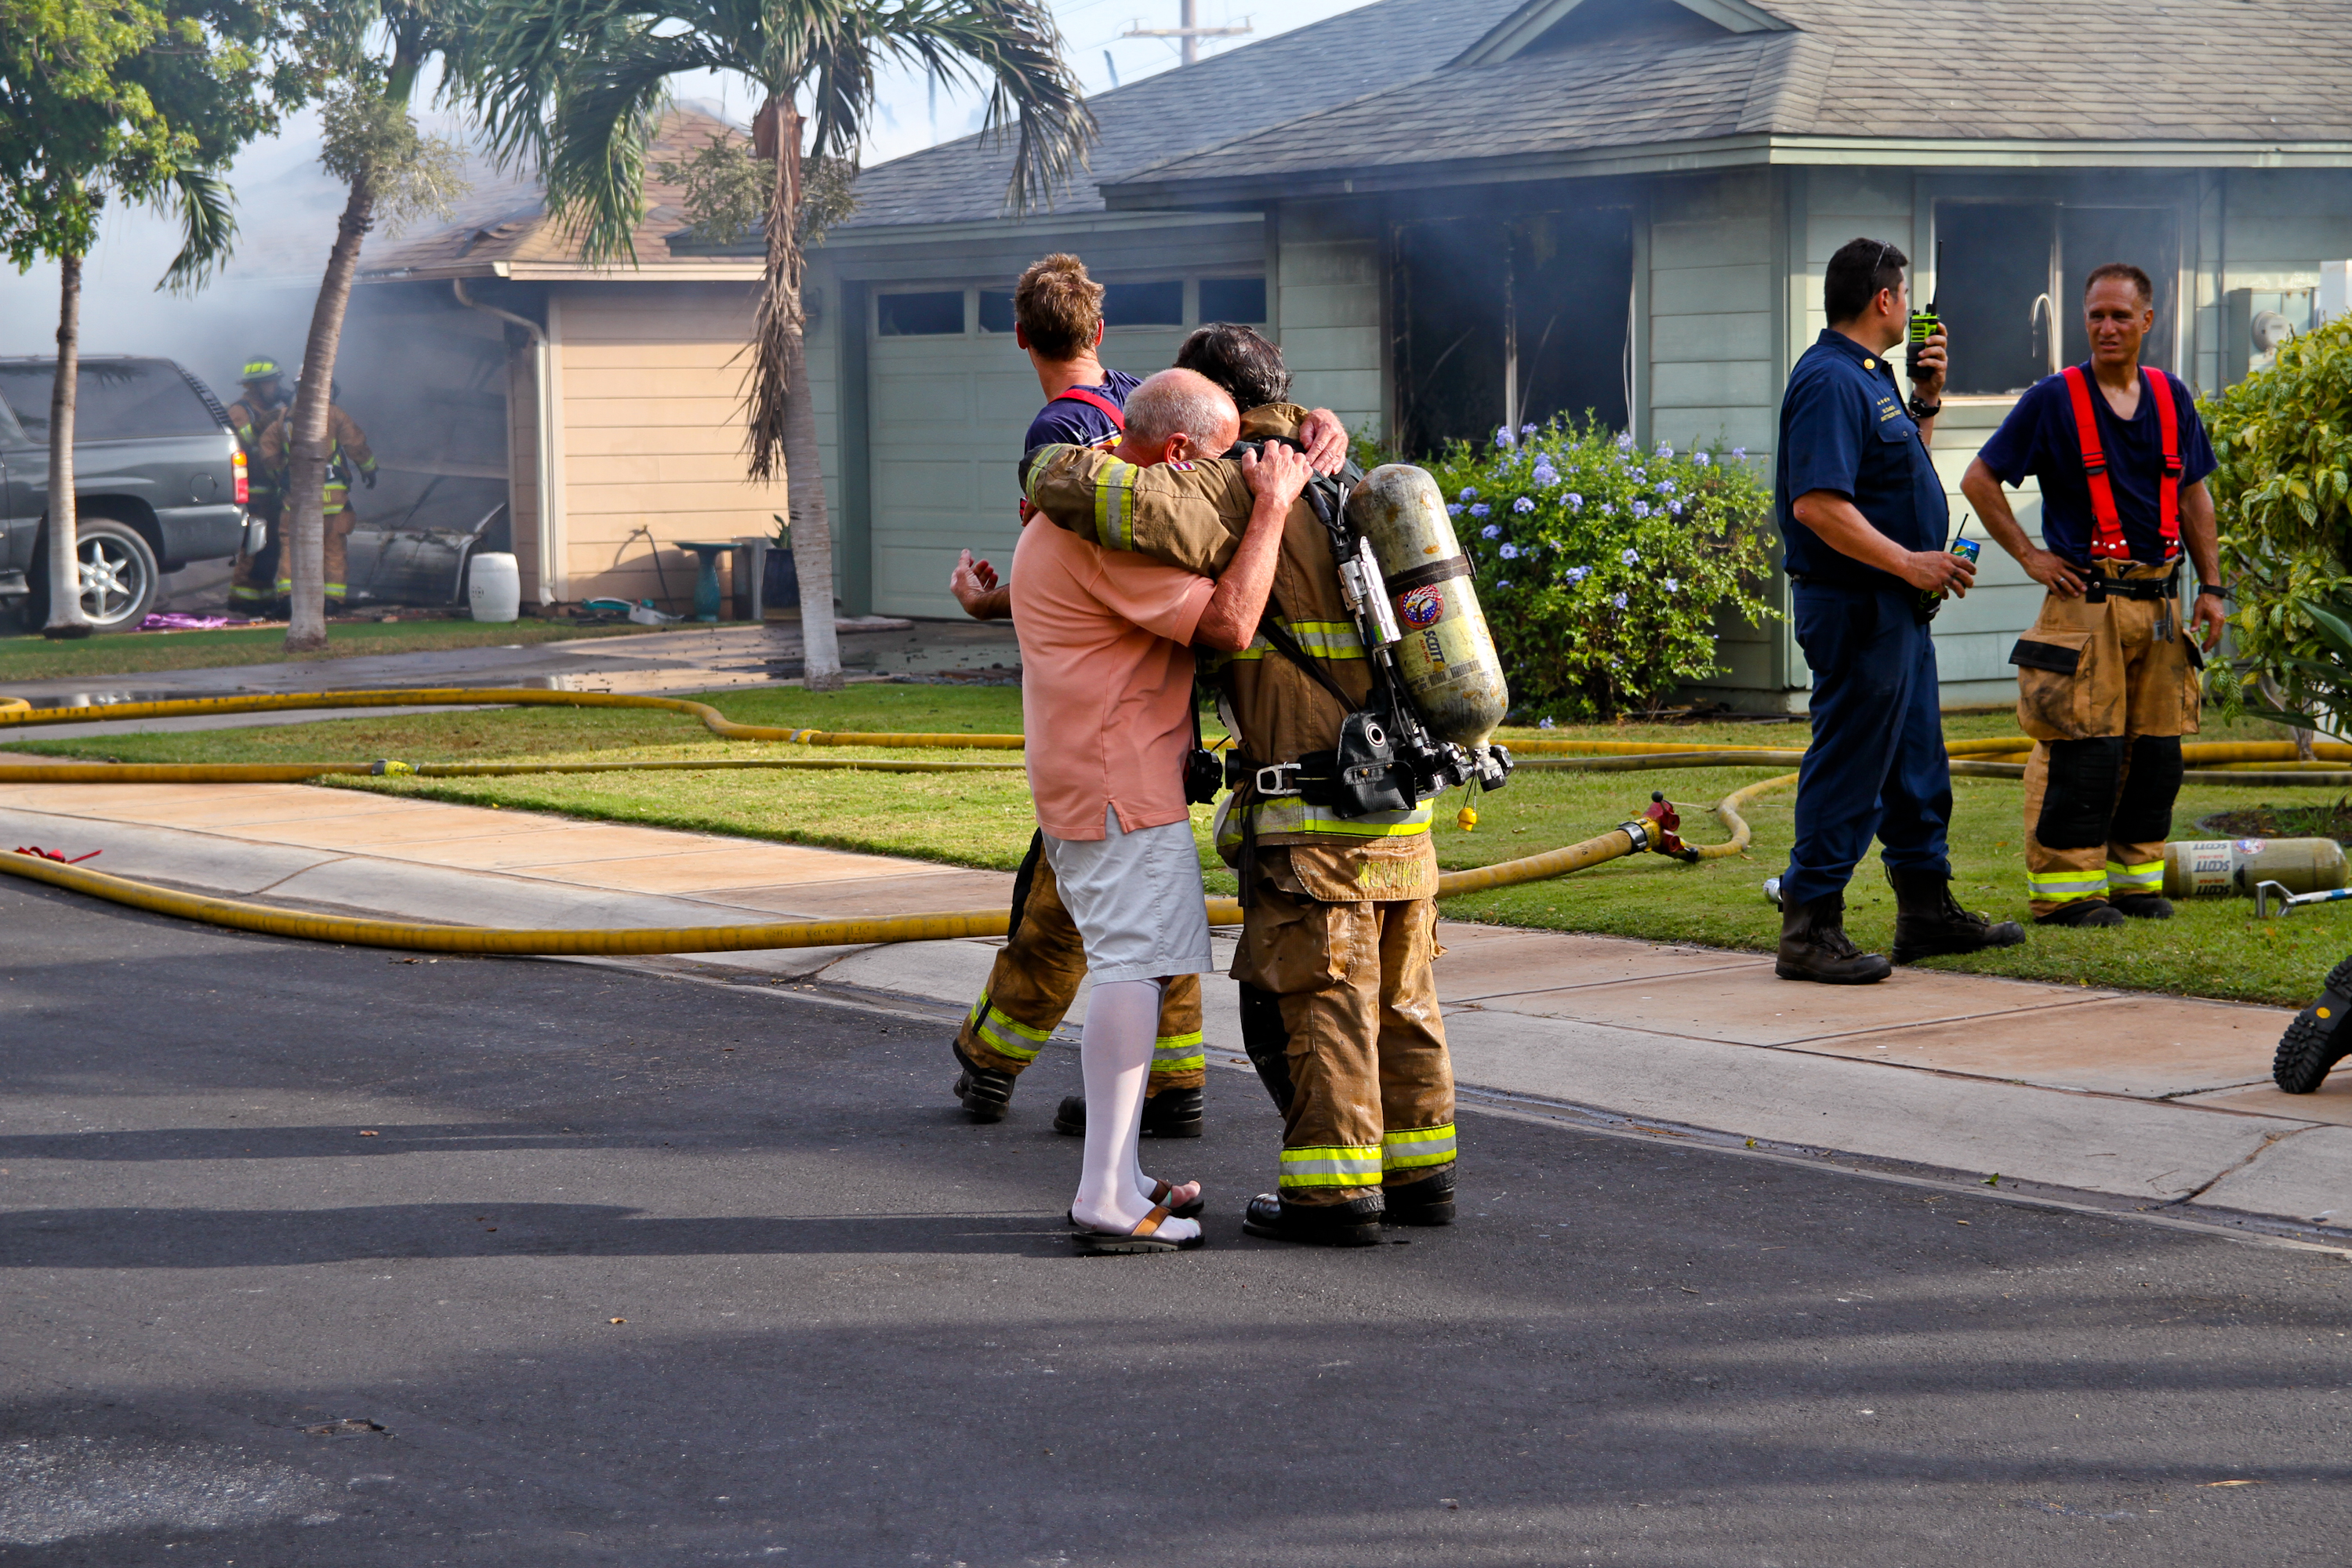 Fireworks Likely Cause of Kīhei Fire: Two Homes Destroyed, Four Others Damaged